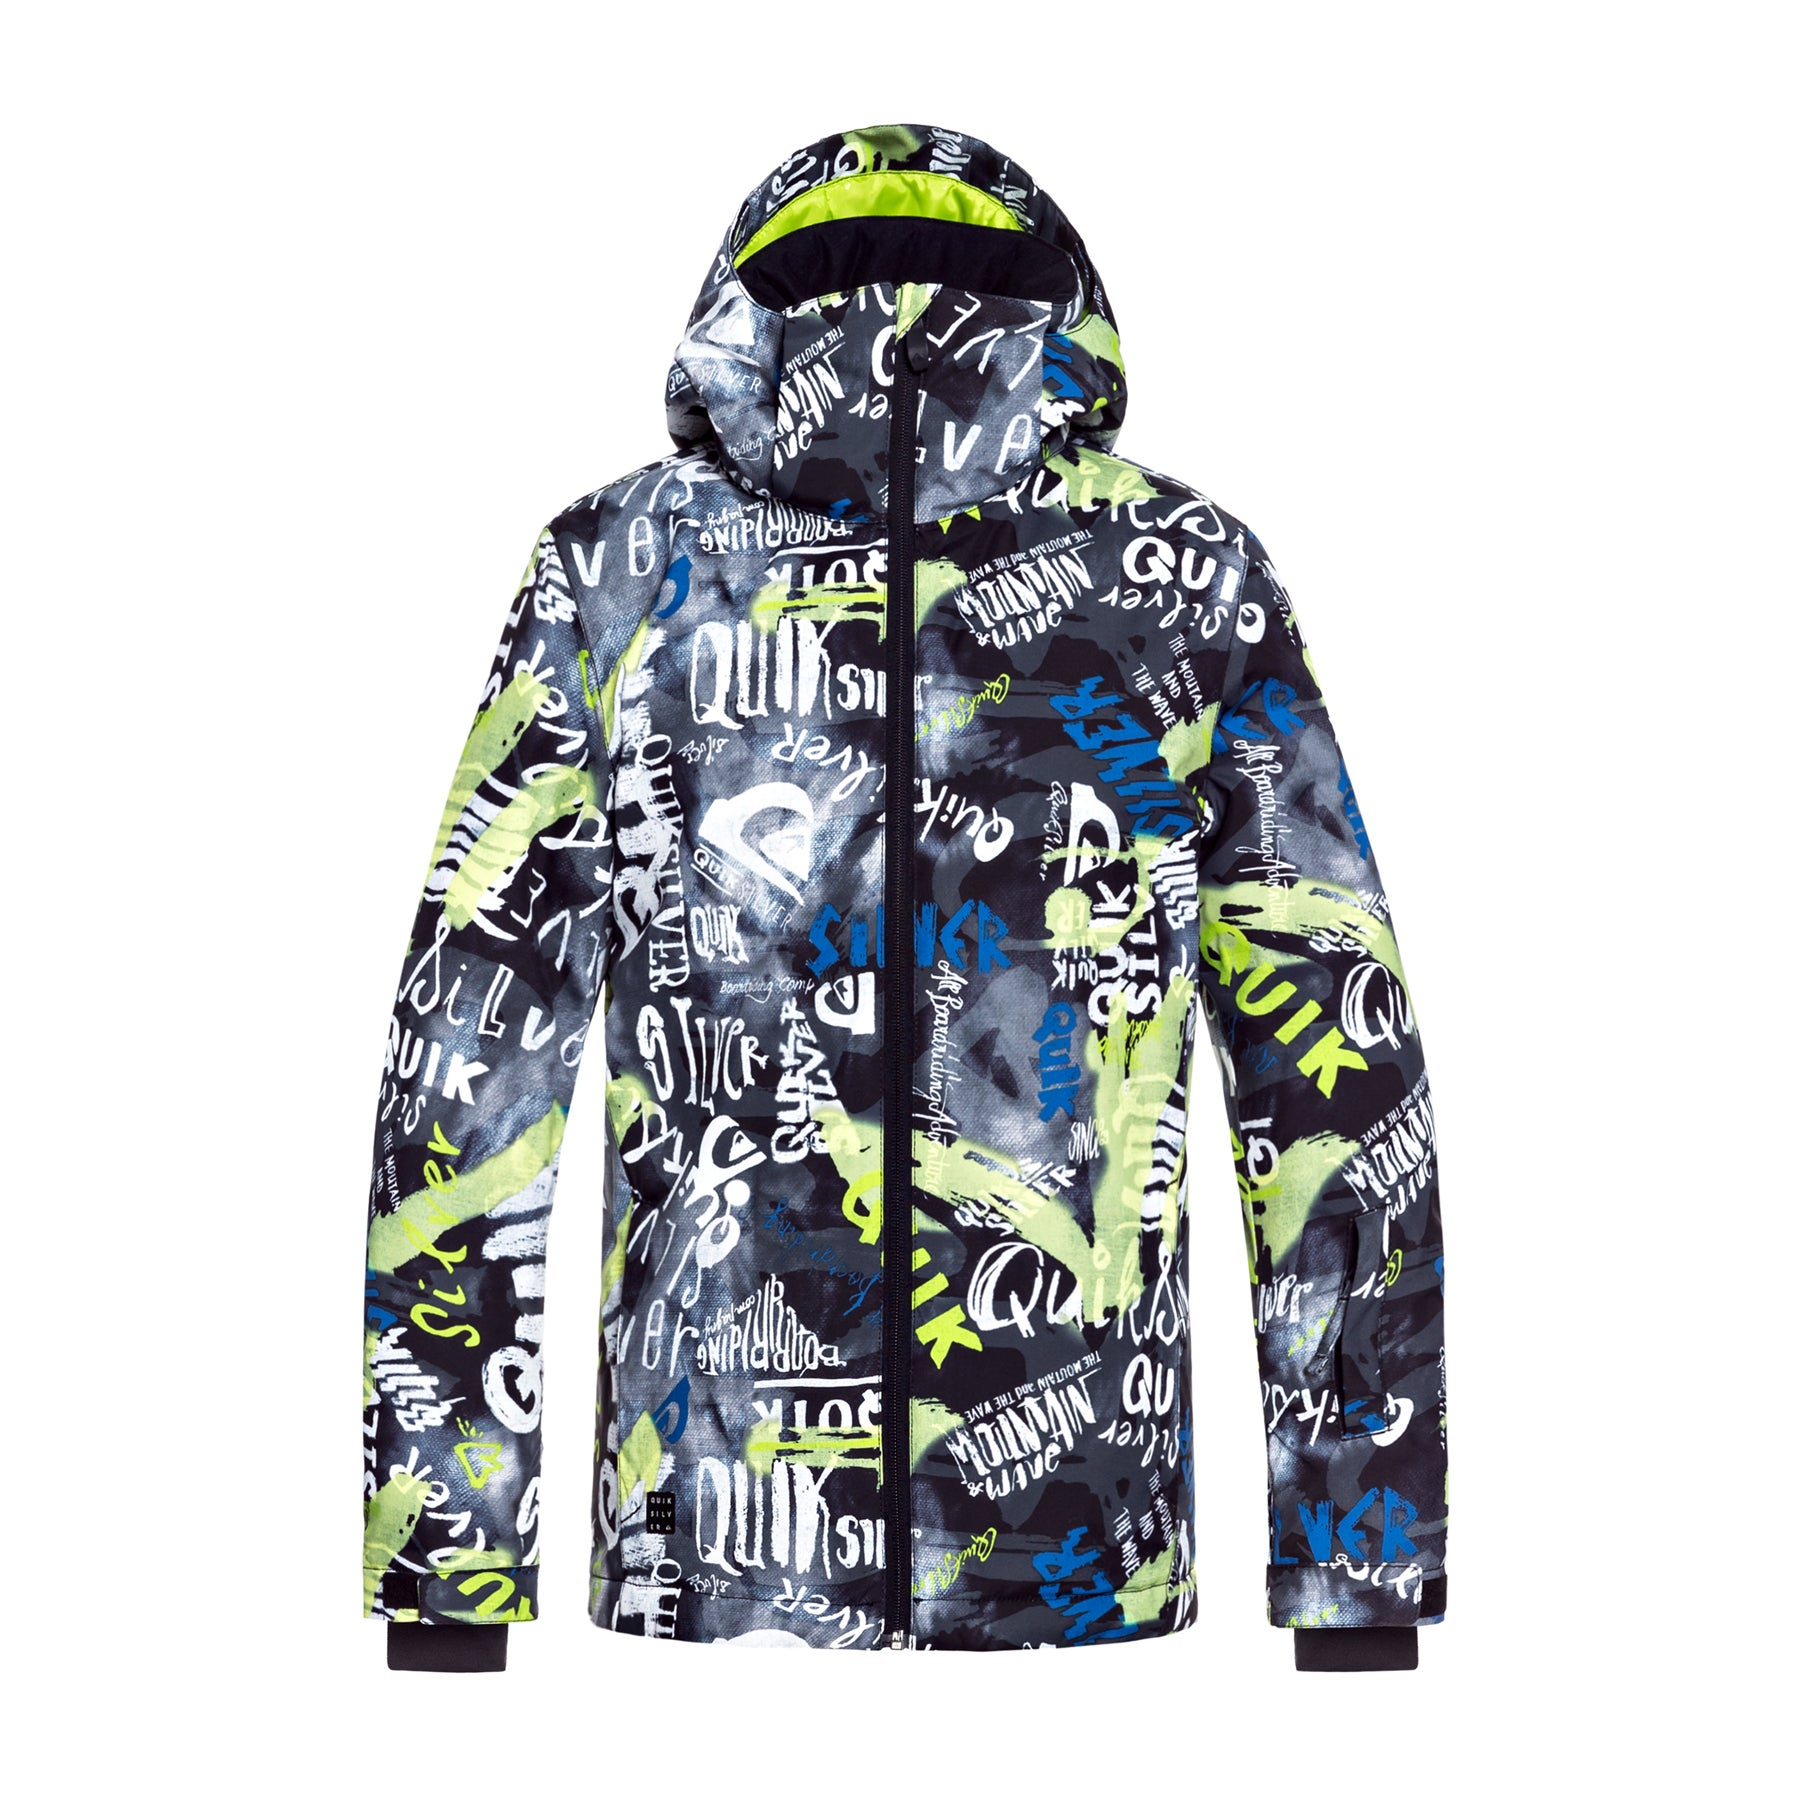 ef75cae7c Quiksilver Boys Mission Printed Kids Jacket Snowboard - Black ...